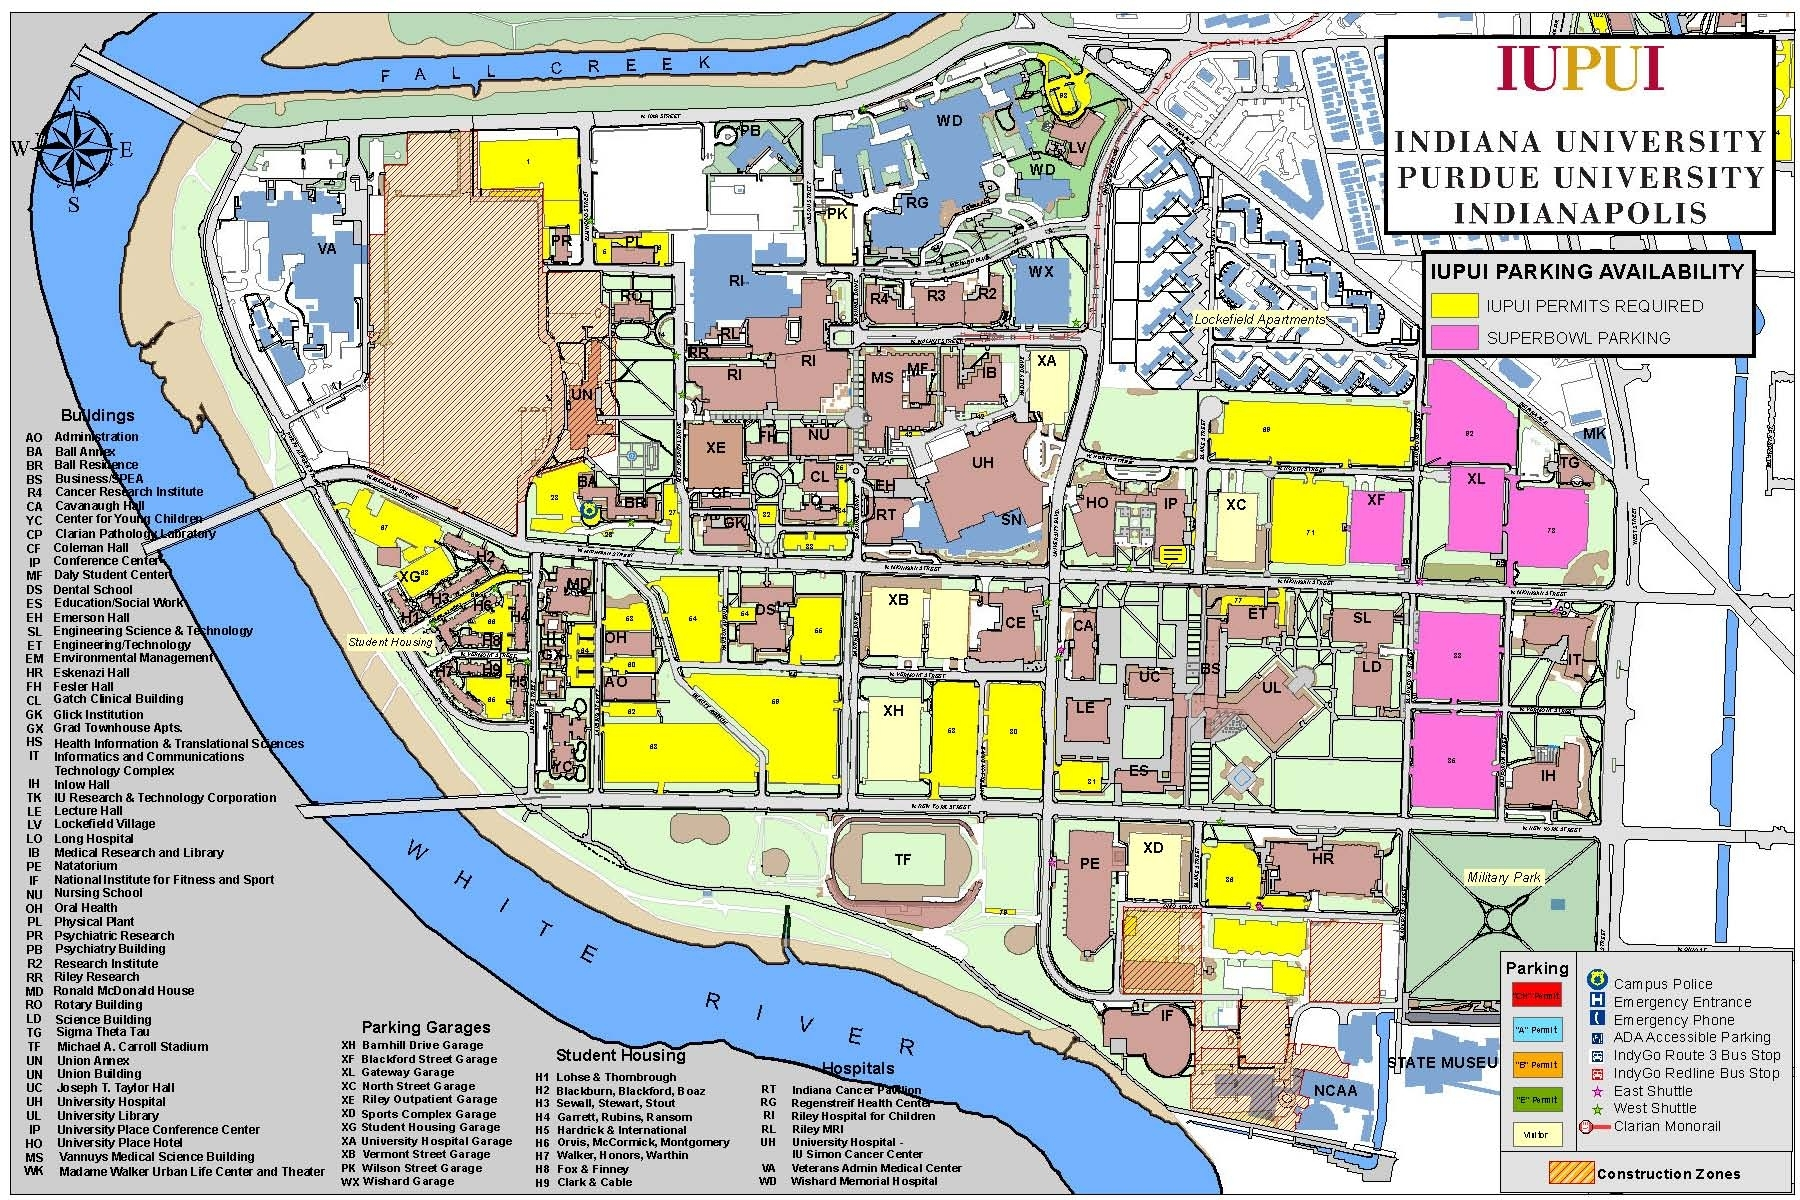 Iupui Campus To Offer Super Bowl Event Parking : Newscenter with Super Bowl Parking Map